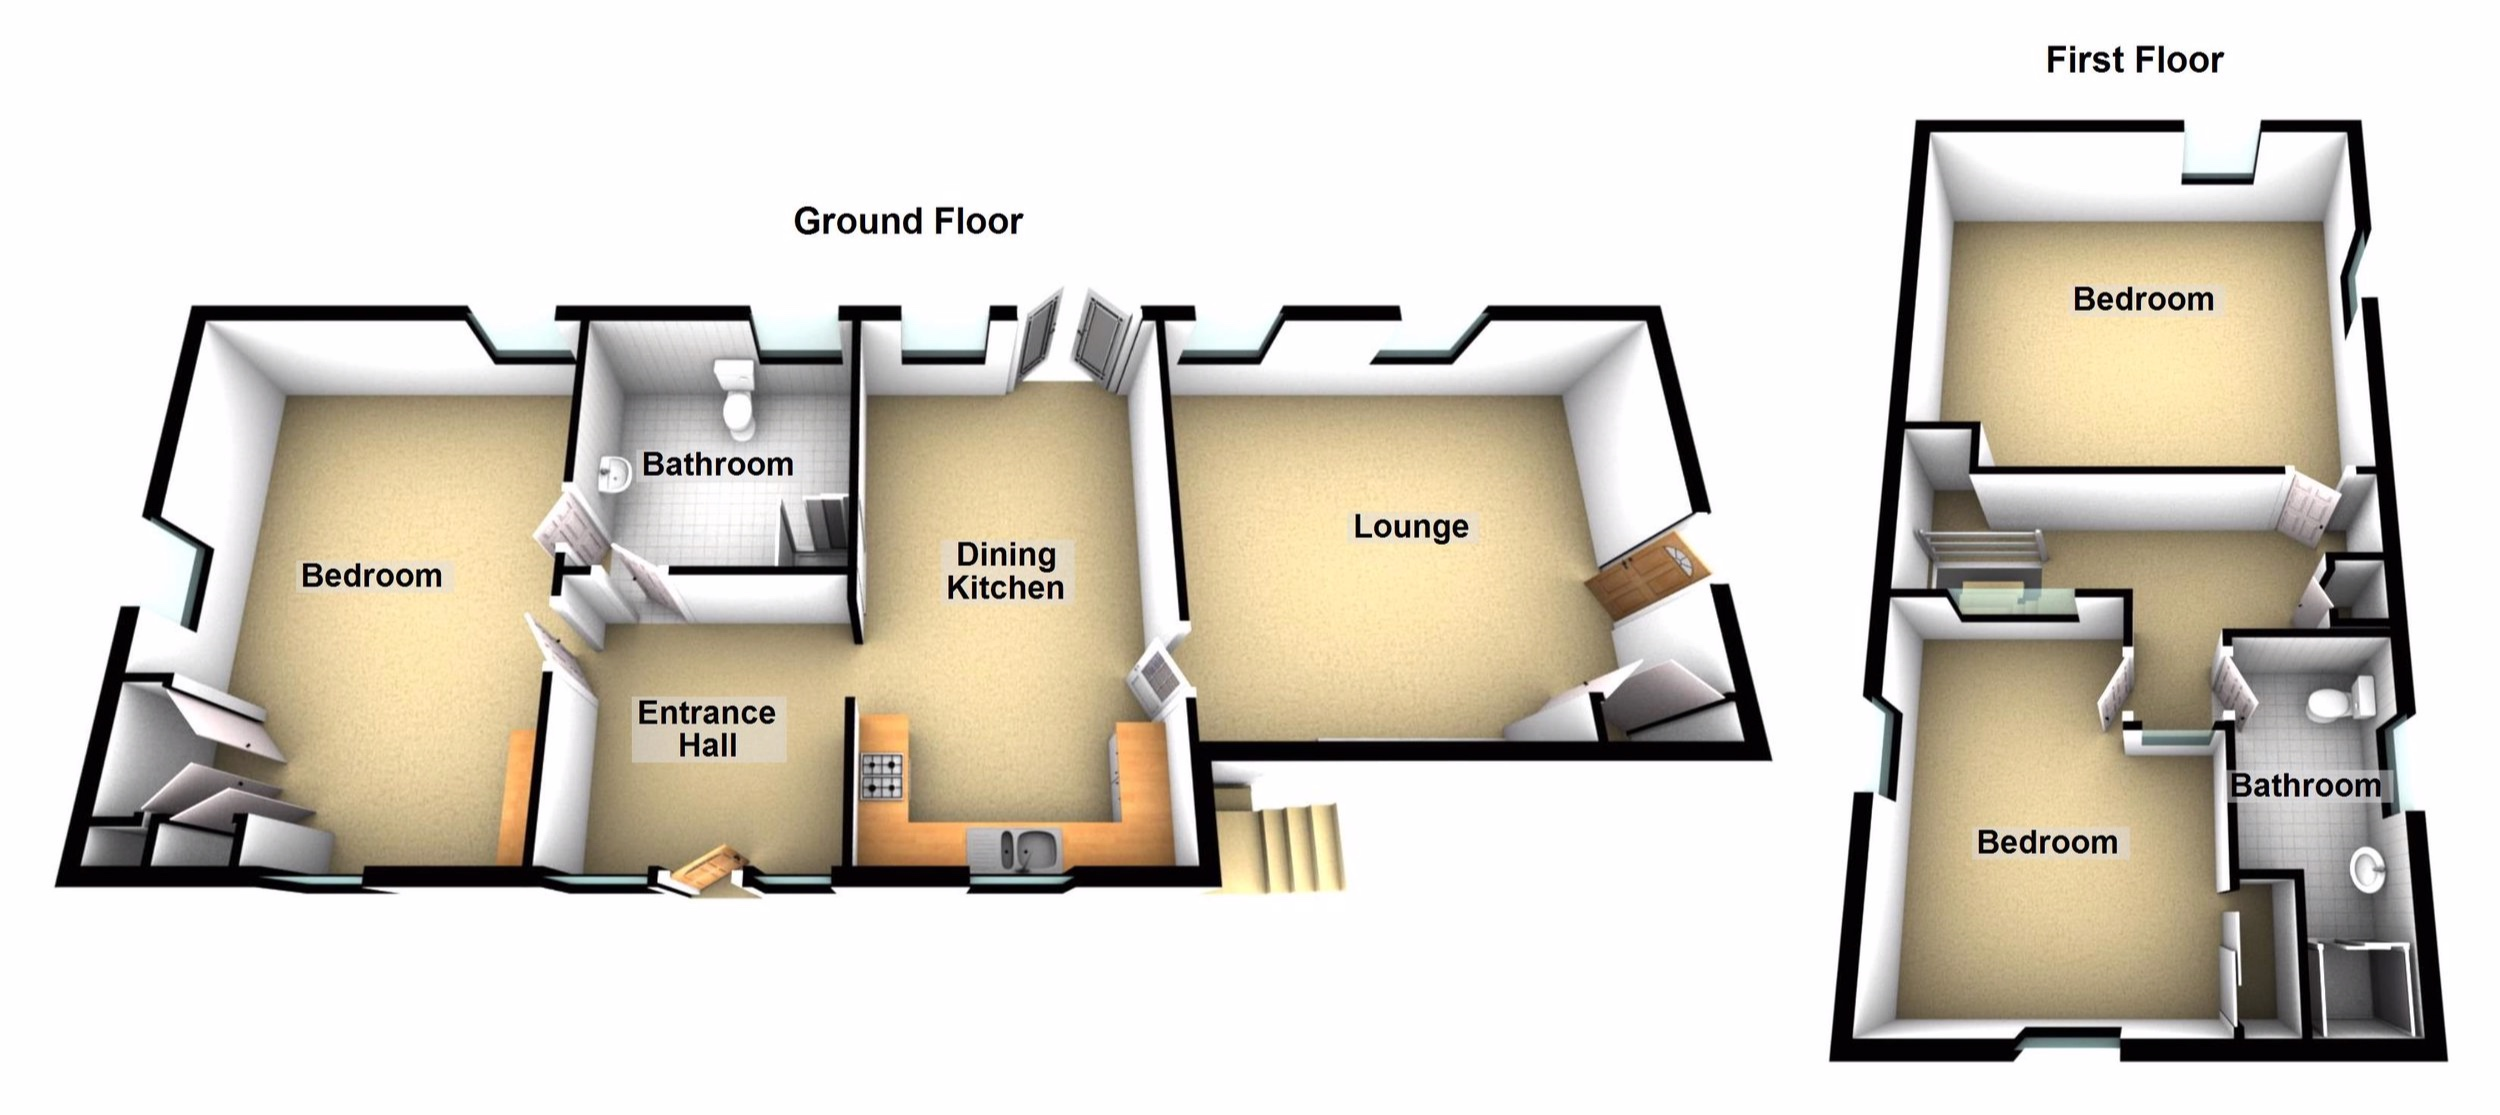 click on the floor plan to explore an interactive tour of The Coach House